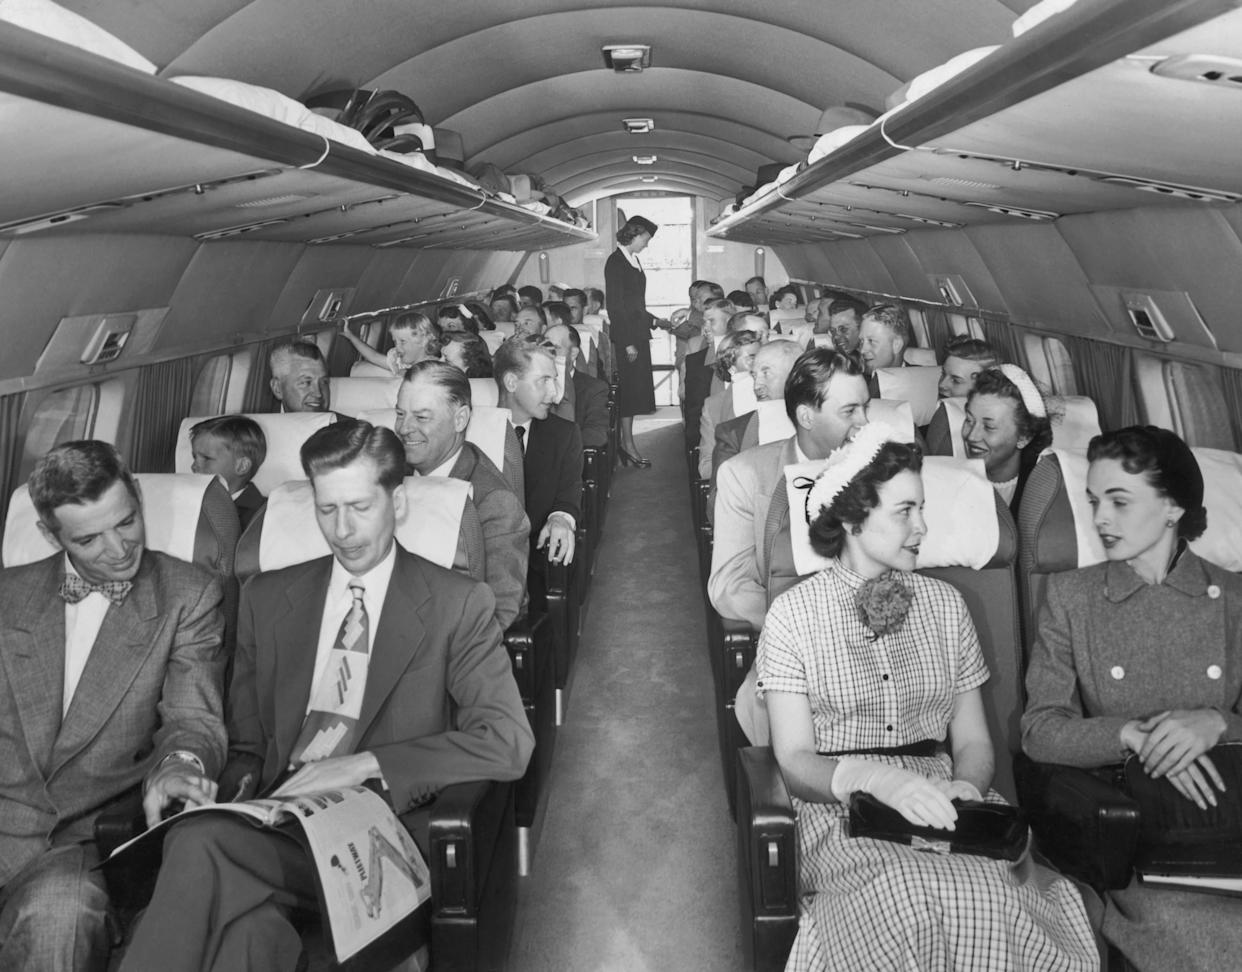 Passengers, seated two to a row, talk with their inflight neighbors aboard a Mainliner Convair aircraft as the flight attendant works at the back of the plane in the late 1940s.